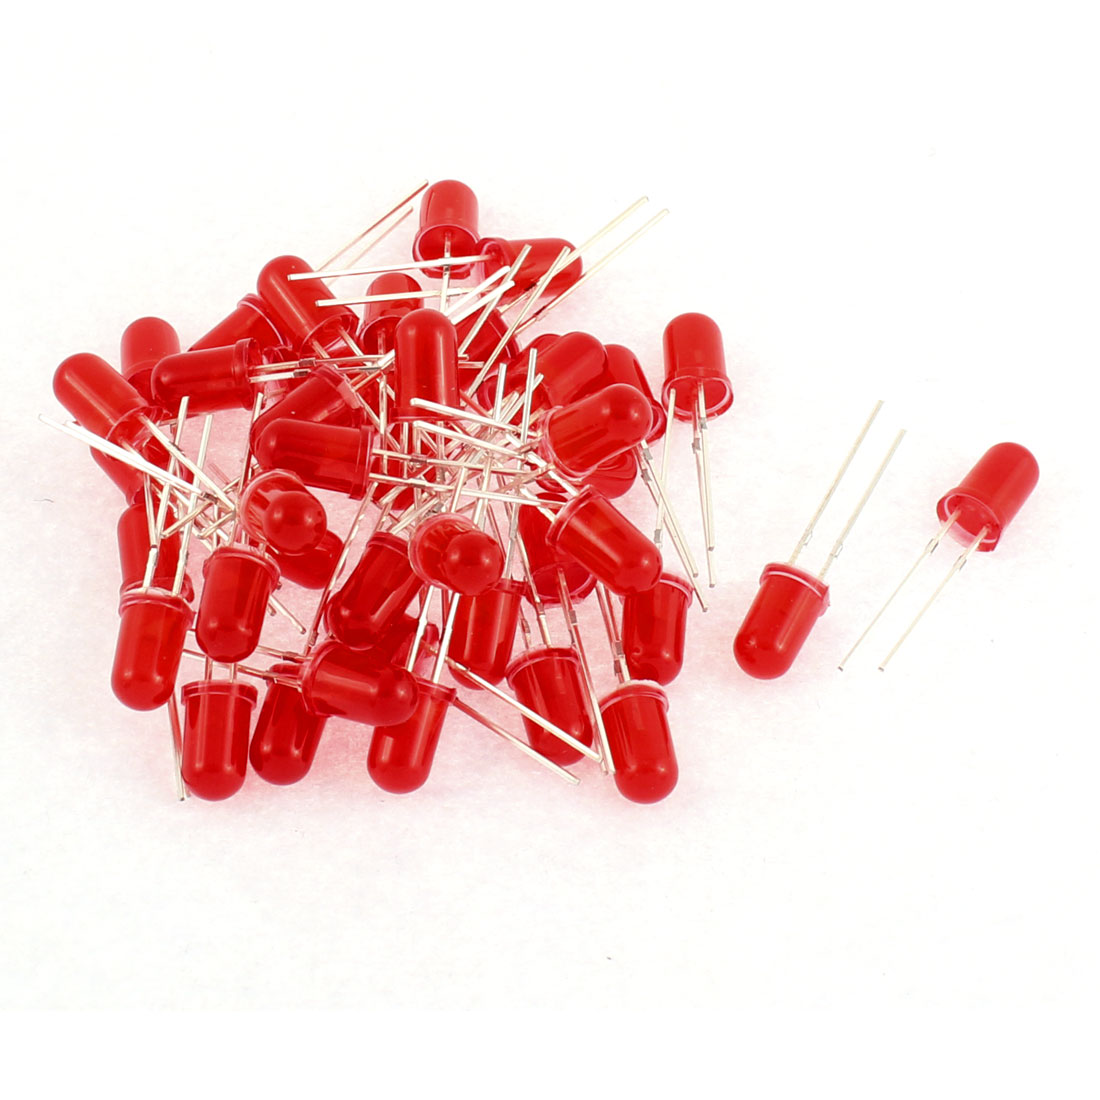 40pcs 5mm Round Top Red Light LED Luminous Emitting Diode Beads